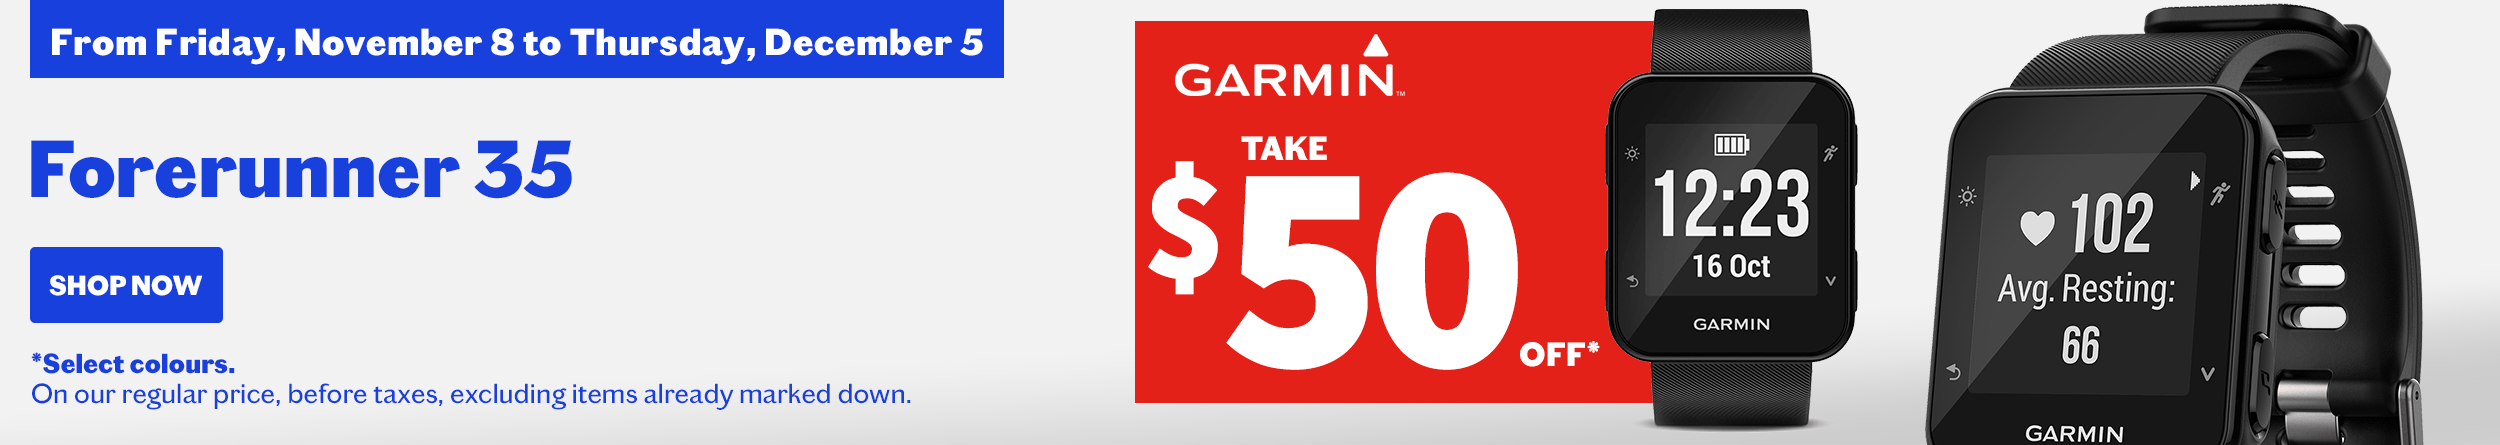 Garmin forerunner activity watch promotion